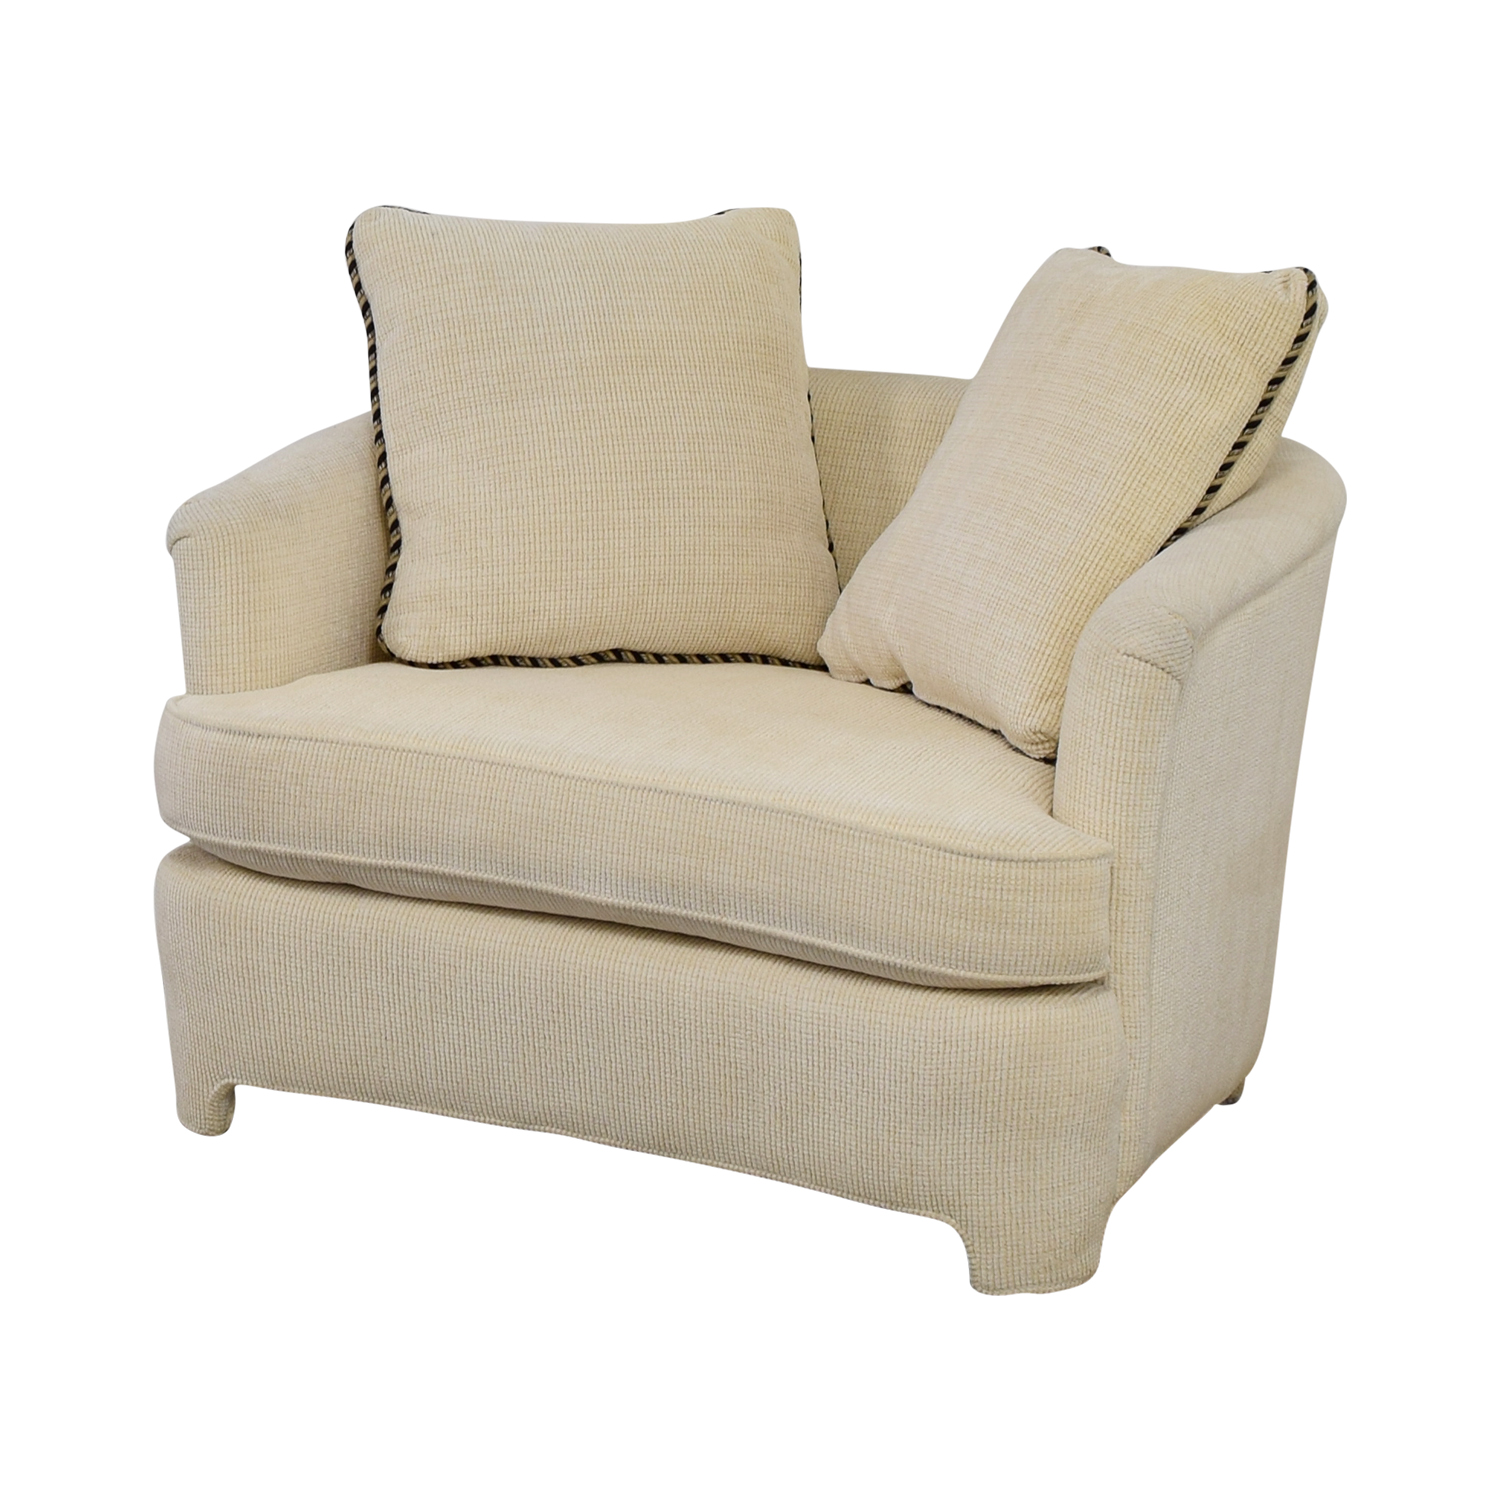 Off White Accent Chair 90 Off Off White Accent Chair With Pillows Chairs